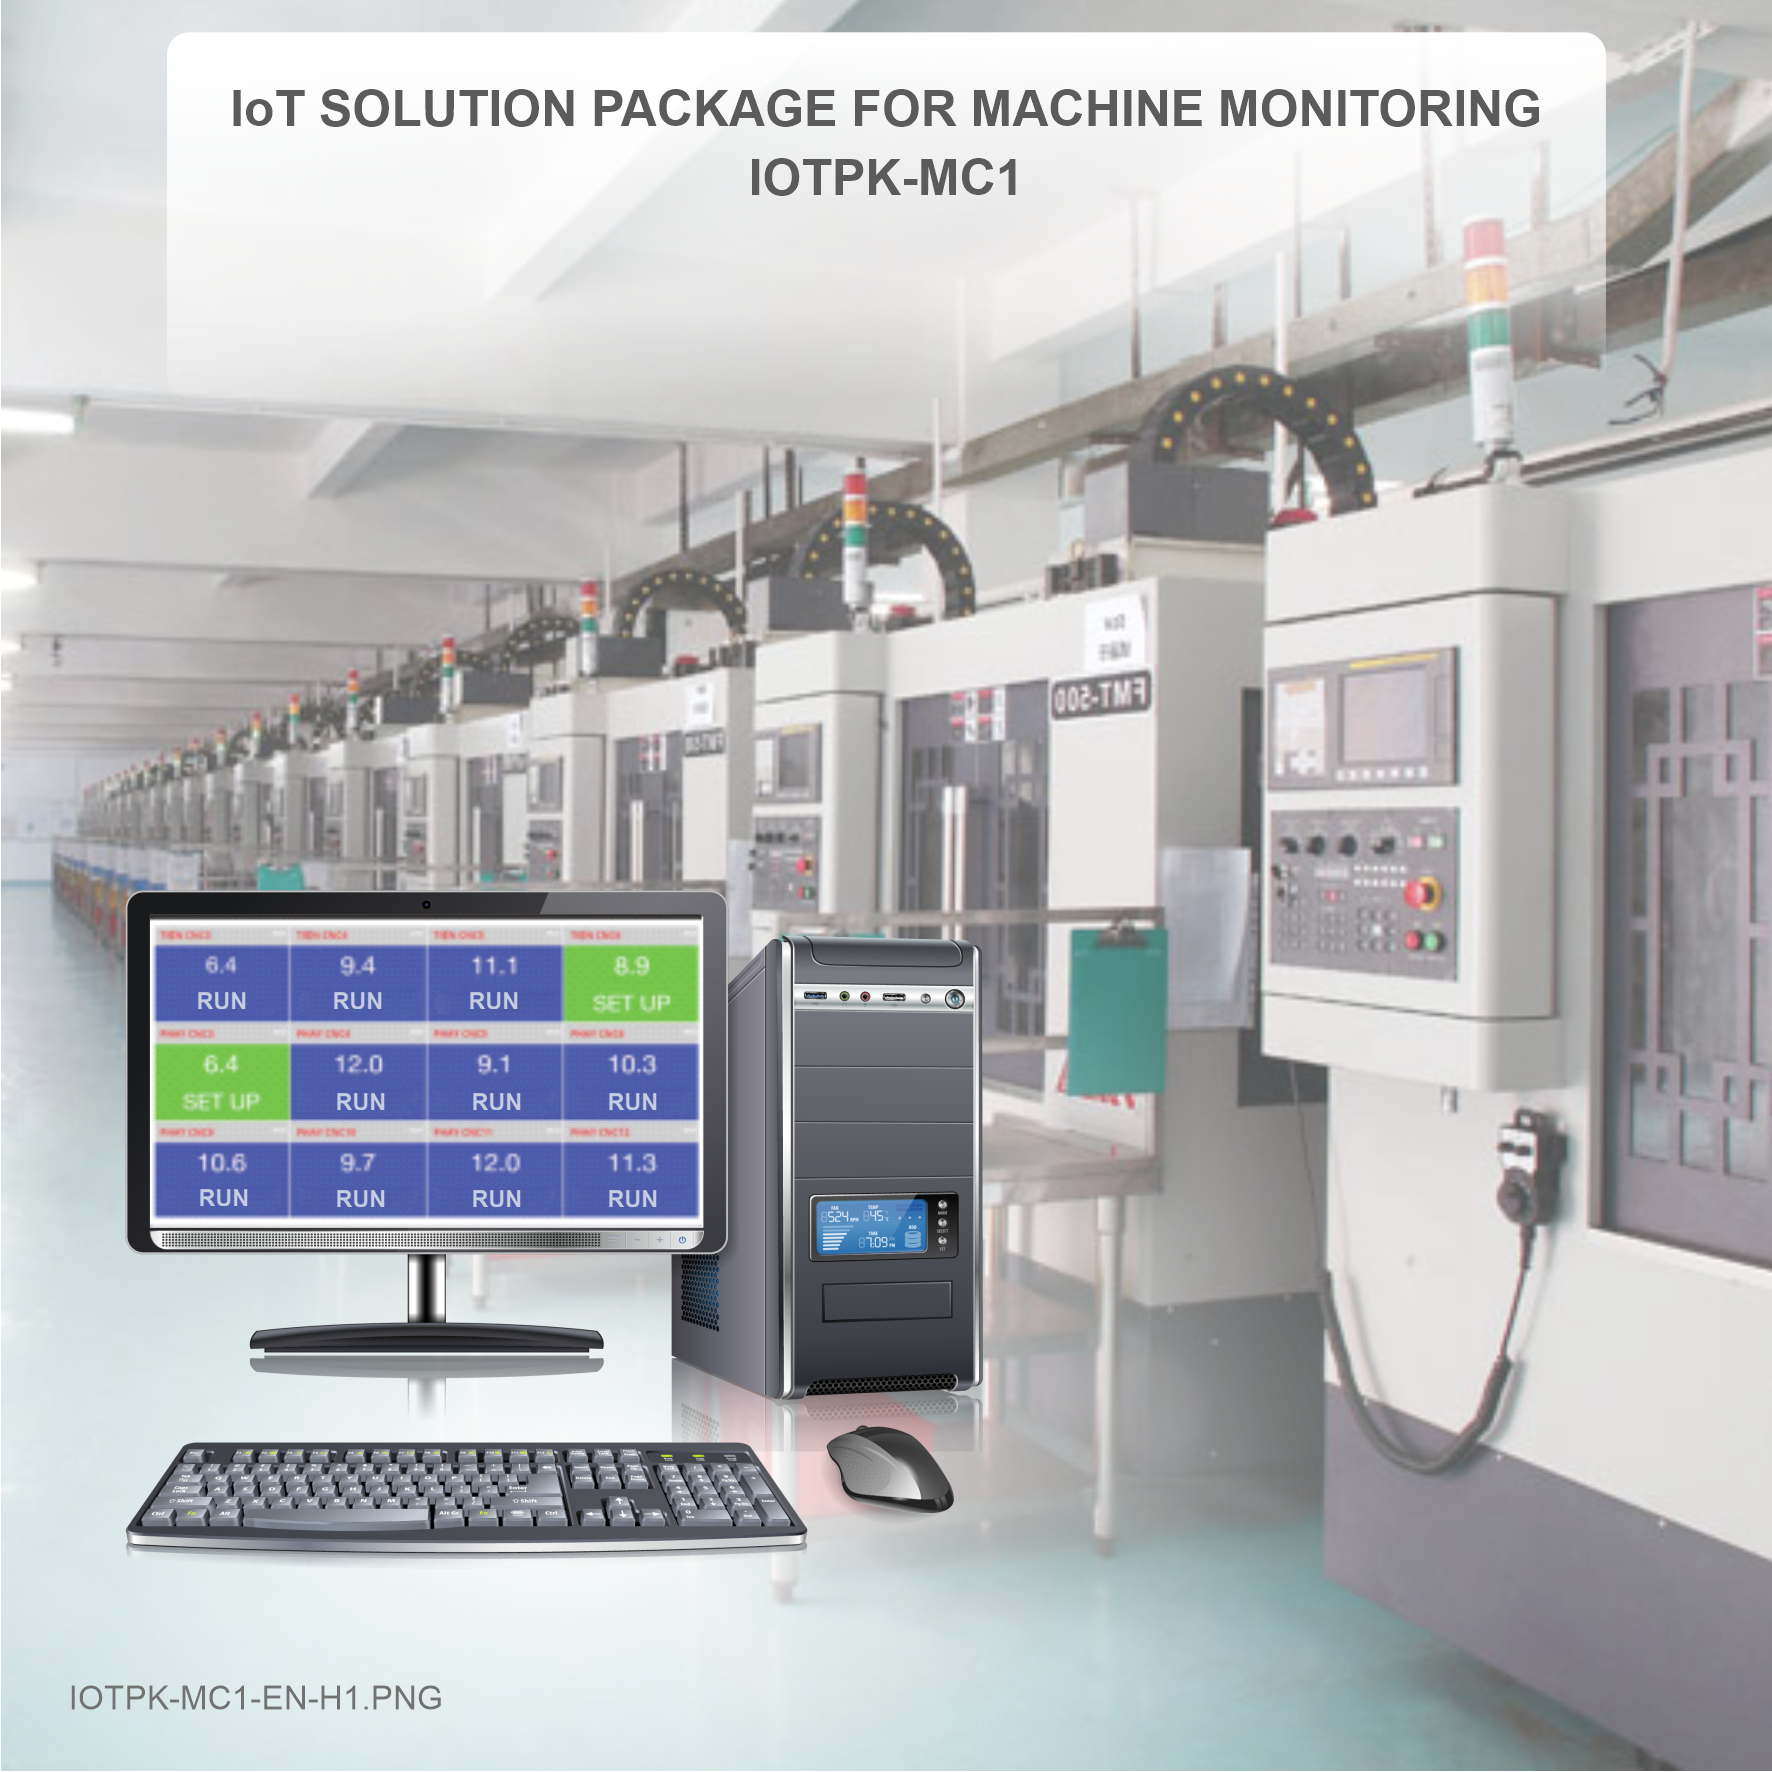 IoT SOLUTION PACKAGE FOR MACHINE MONITORING